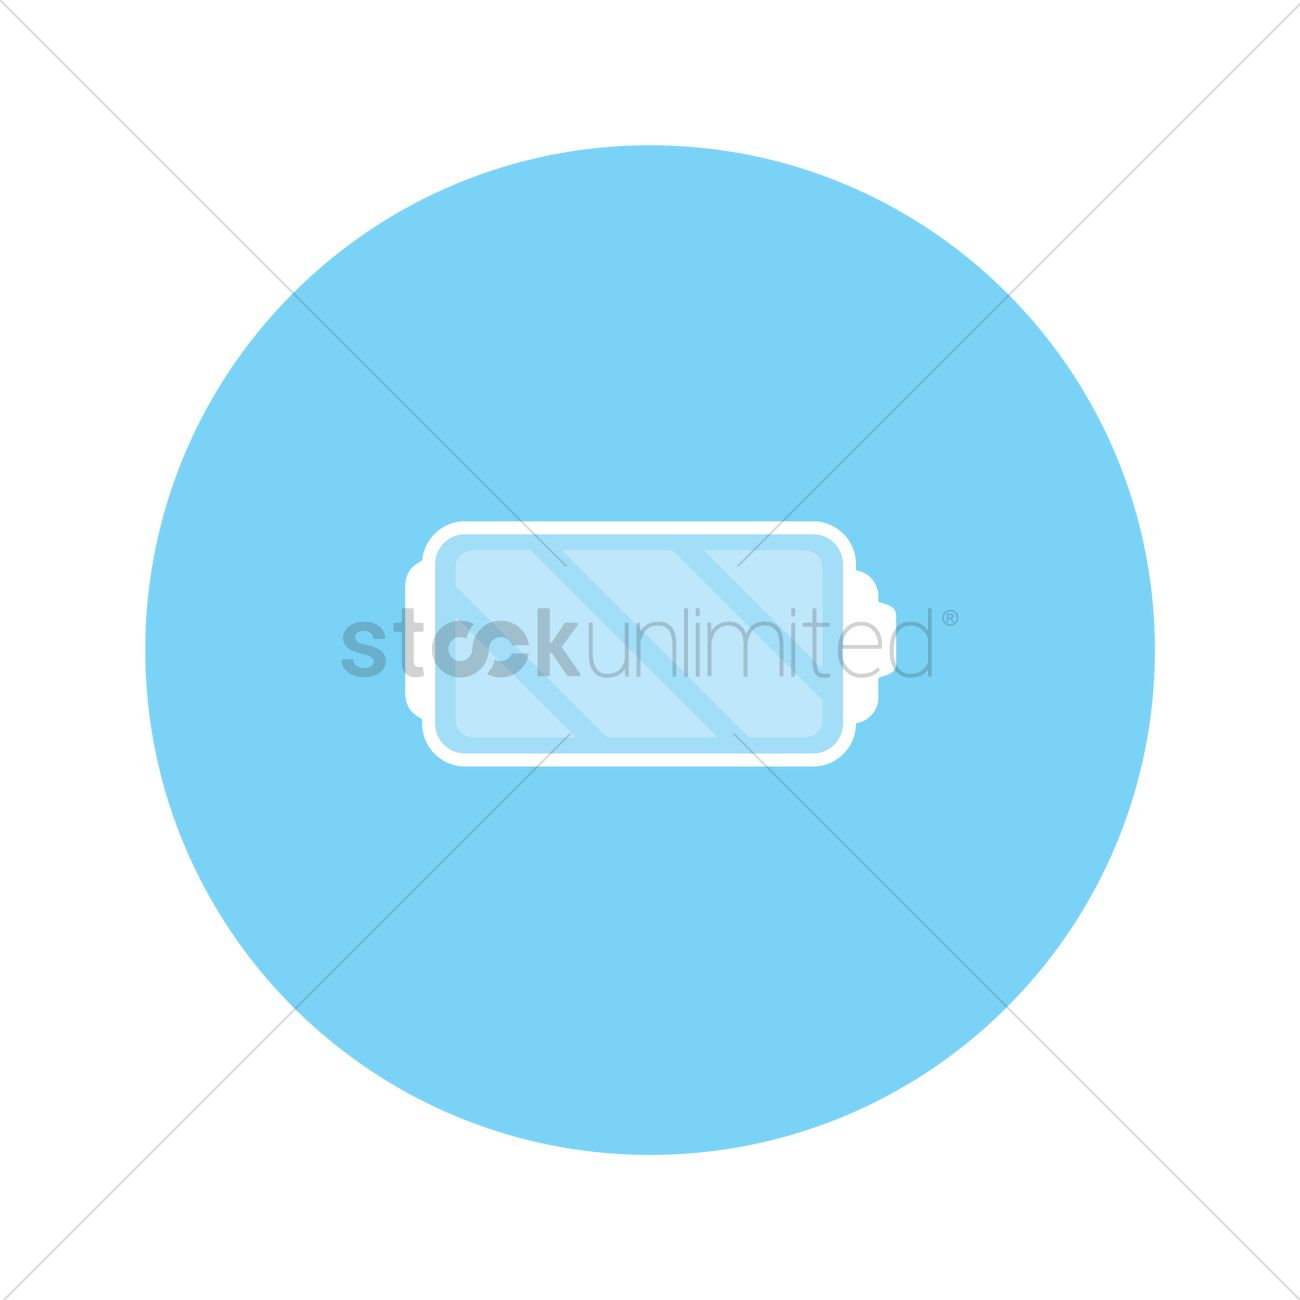 Free Battery Level Indicator Vector Image 1247482 Stockunlimited Graphic